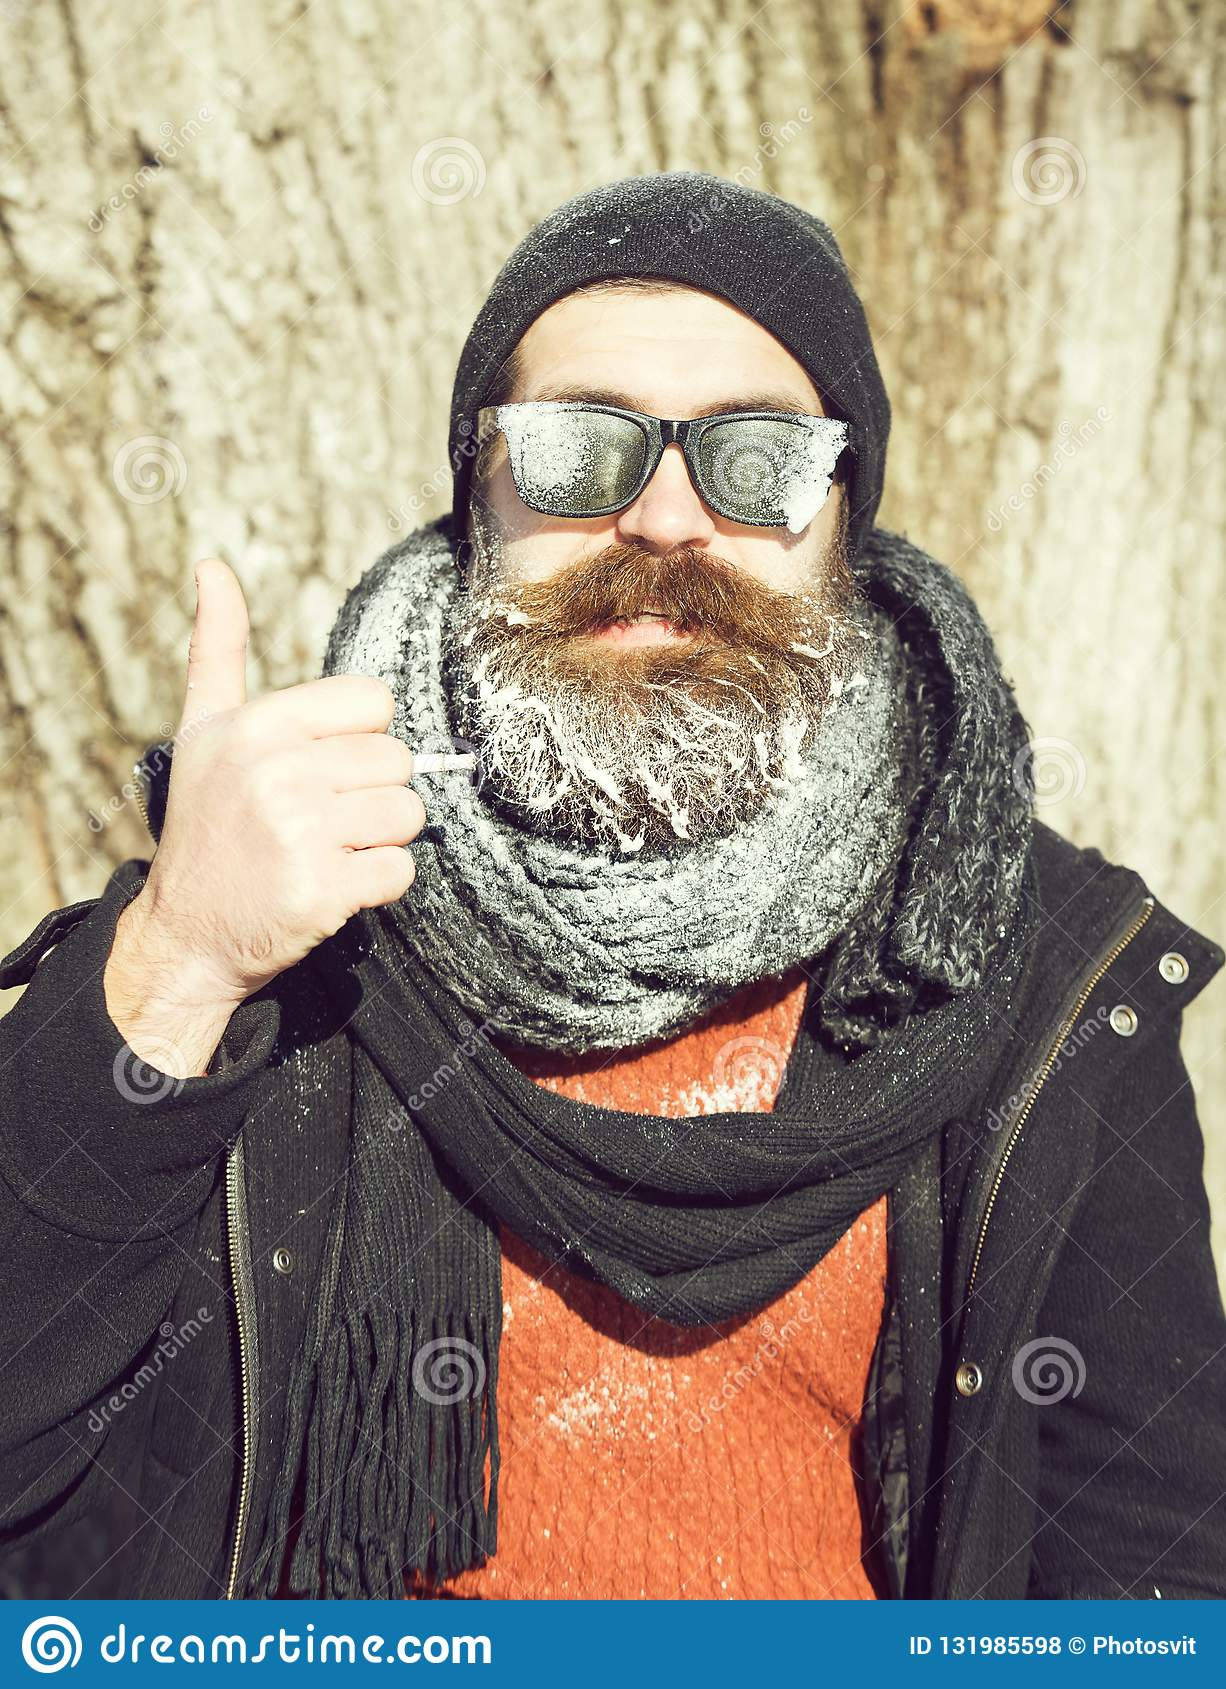 ManHipsterWith And Beard In Handsome Black Bearded Moustache 1JKulcF3T